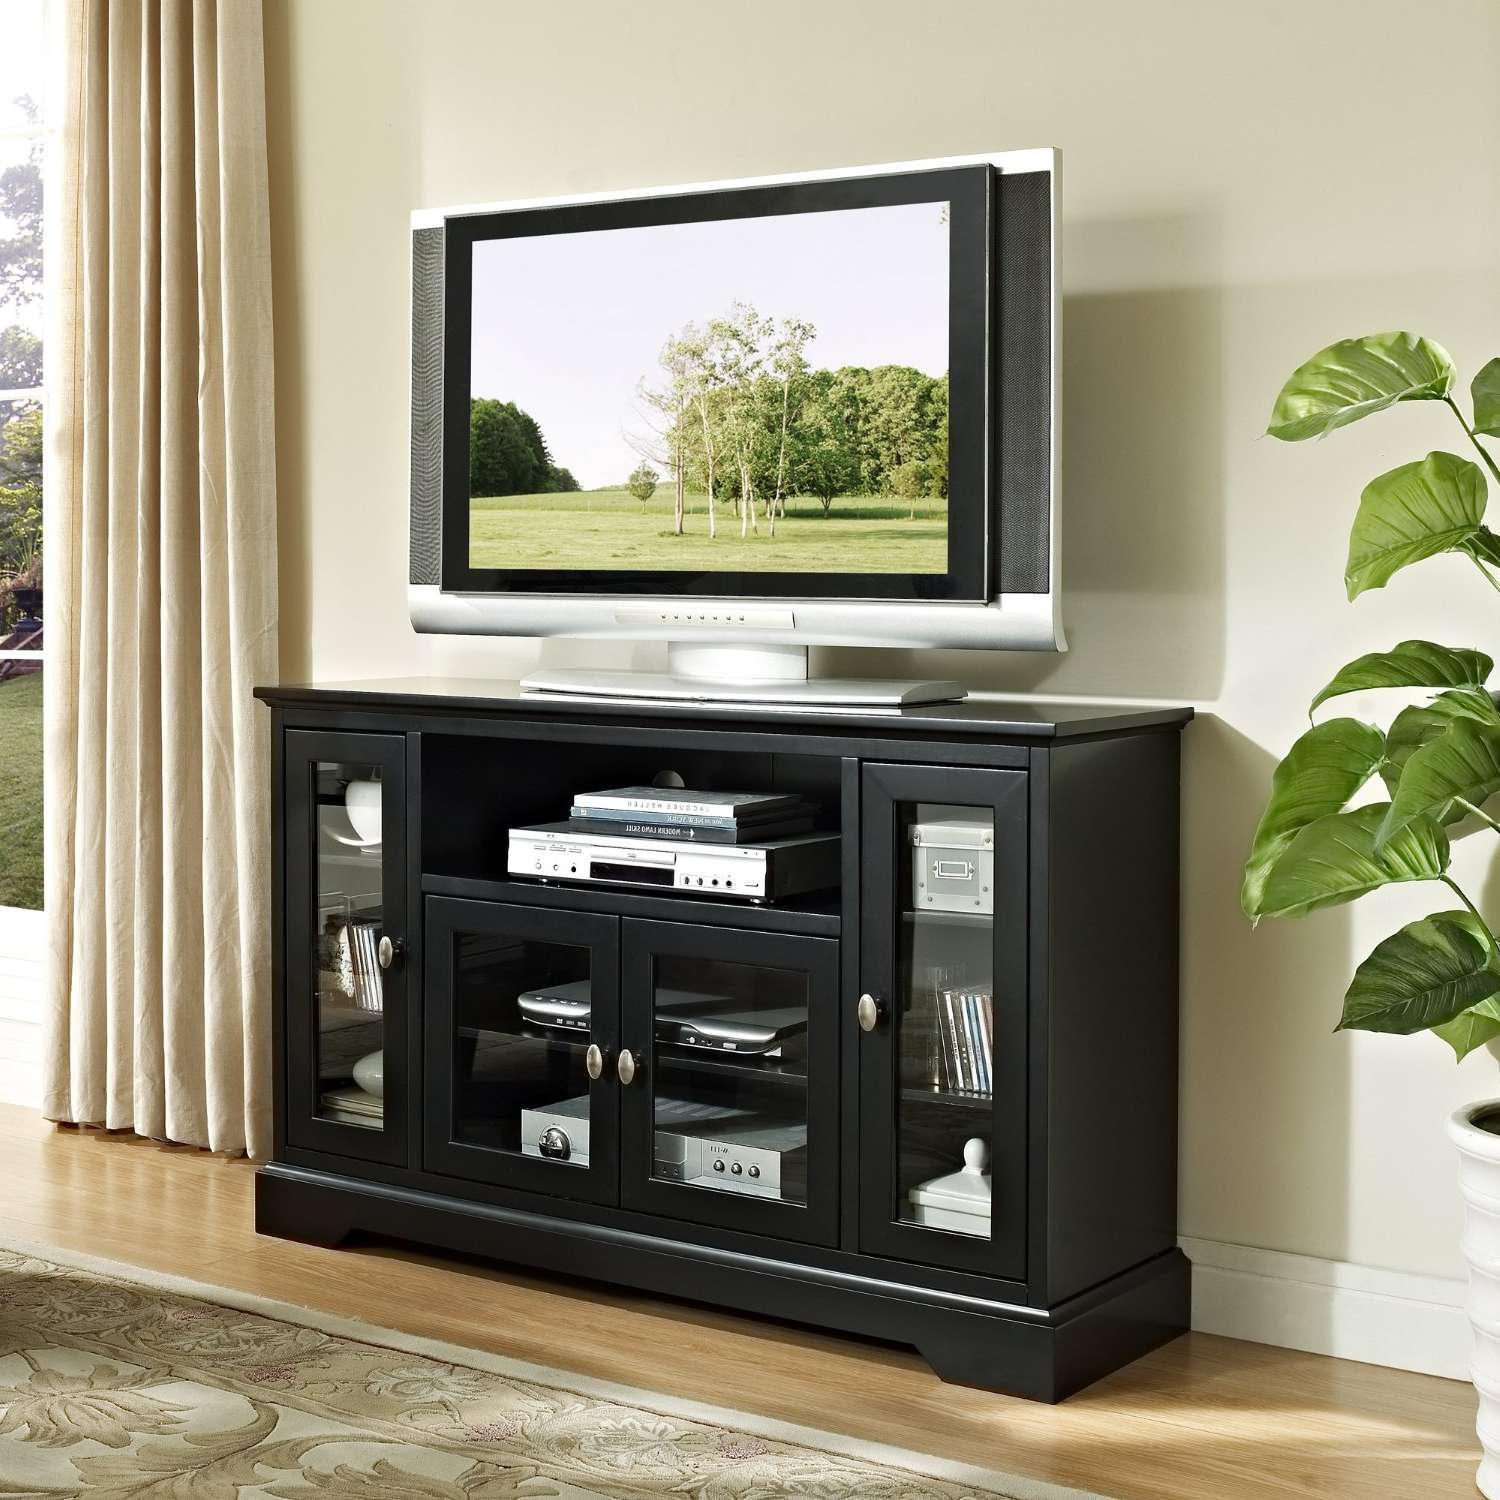 Modern Black Painted Mahogany Wood Media Stand With Glass Doors Of Regarding Wood And Glass Tv Stands For Flat Screens (View 6 of 20)